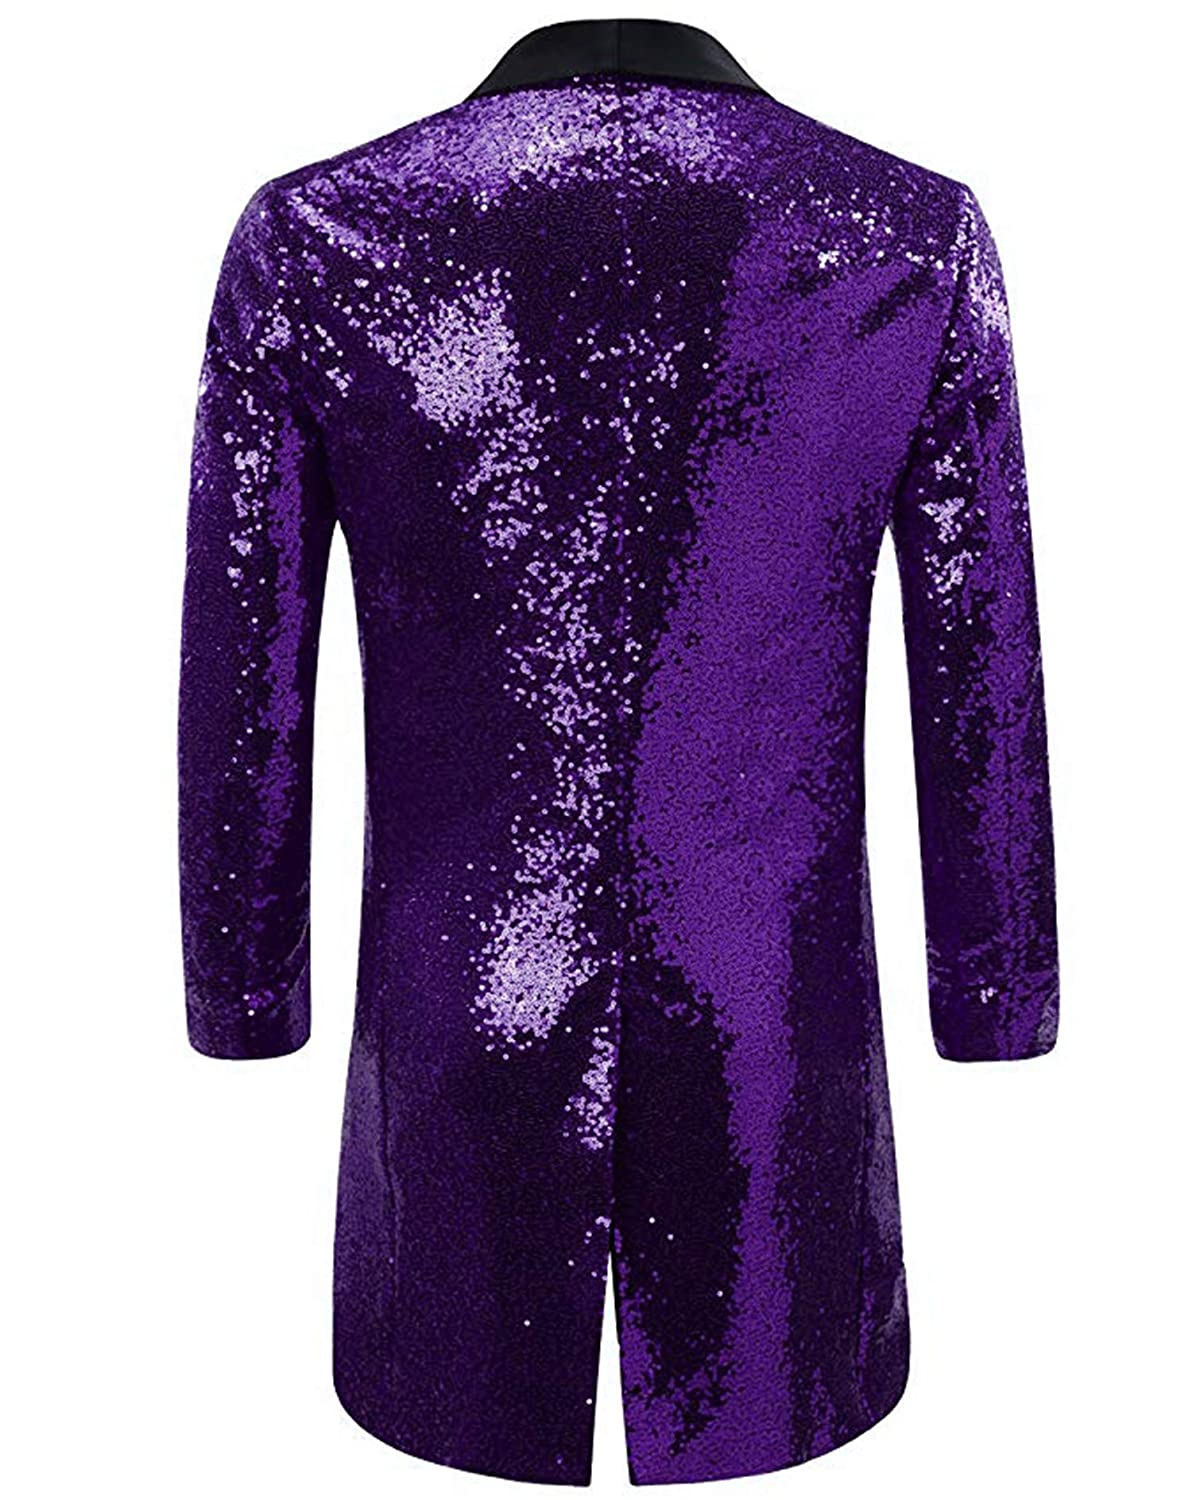 SETWELL Mens Bling Sequins Tuxedo Jacket Coat Wedding Party Stage Show Suits